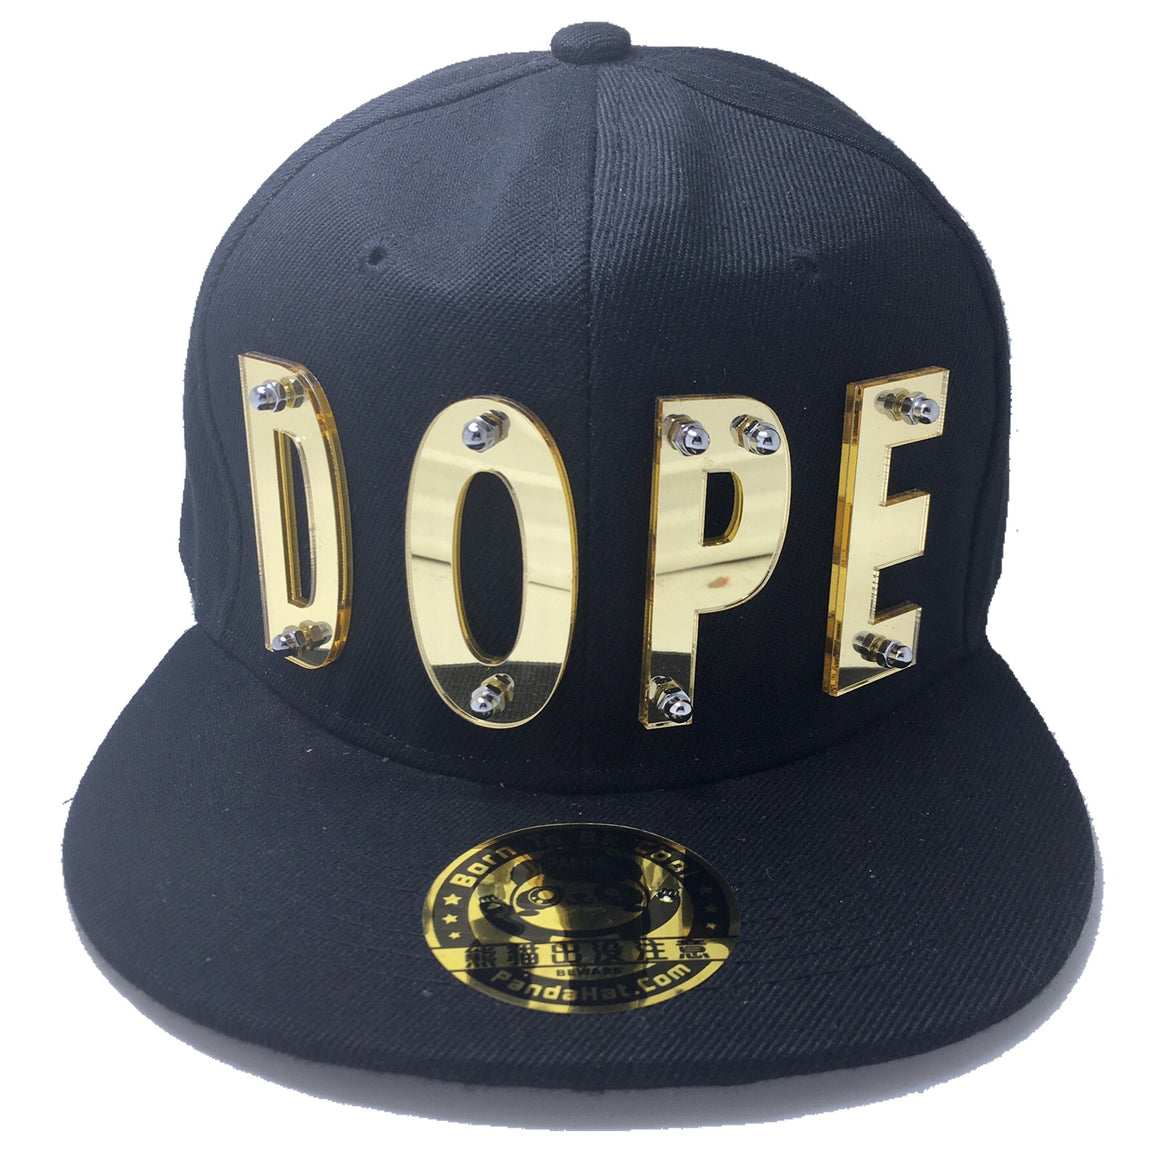 DOPE HAT BLACK GOLD